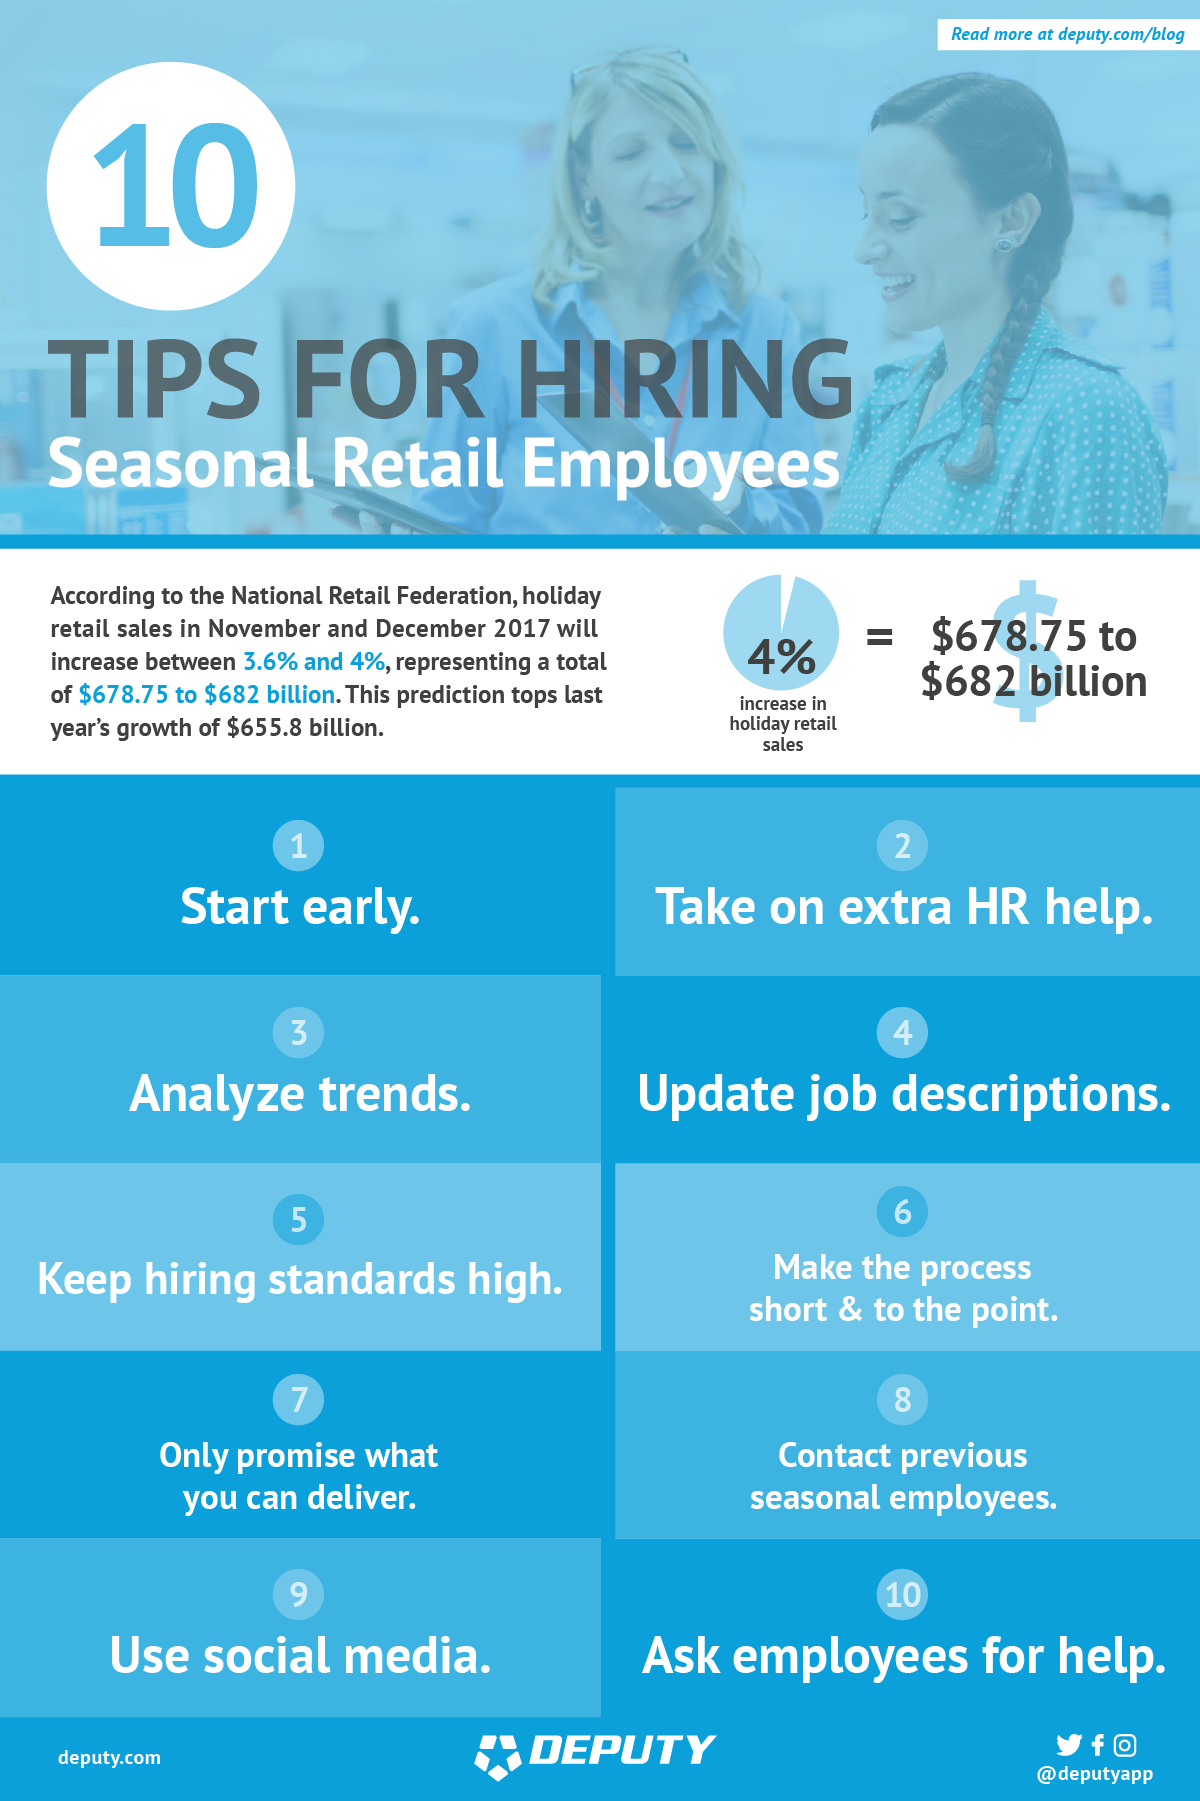 Deputy-10 Tips for Hiring Seasonal Retail Employees-infographic-SCREEN